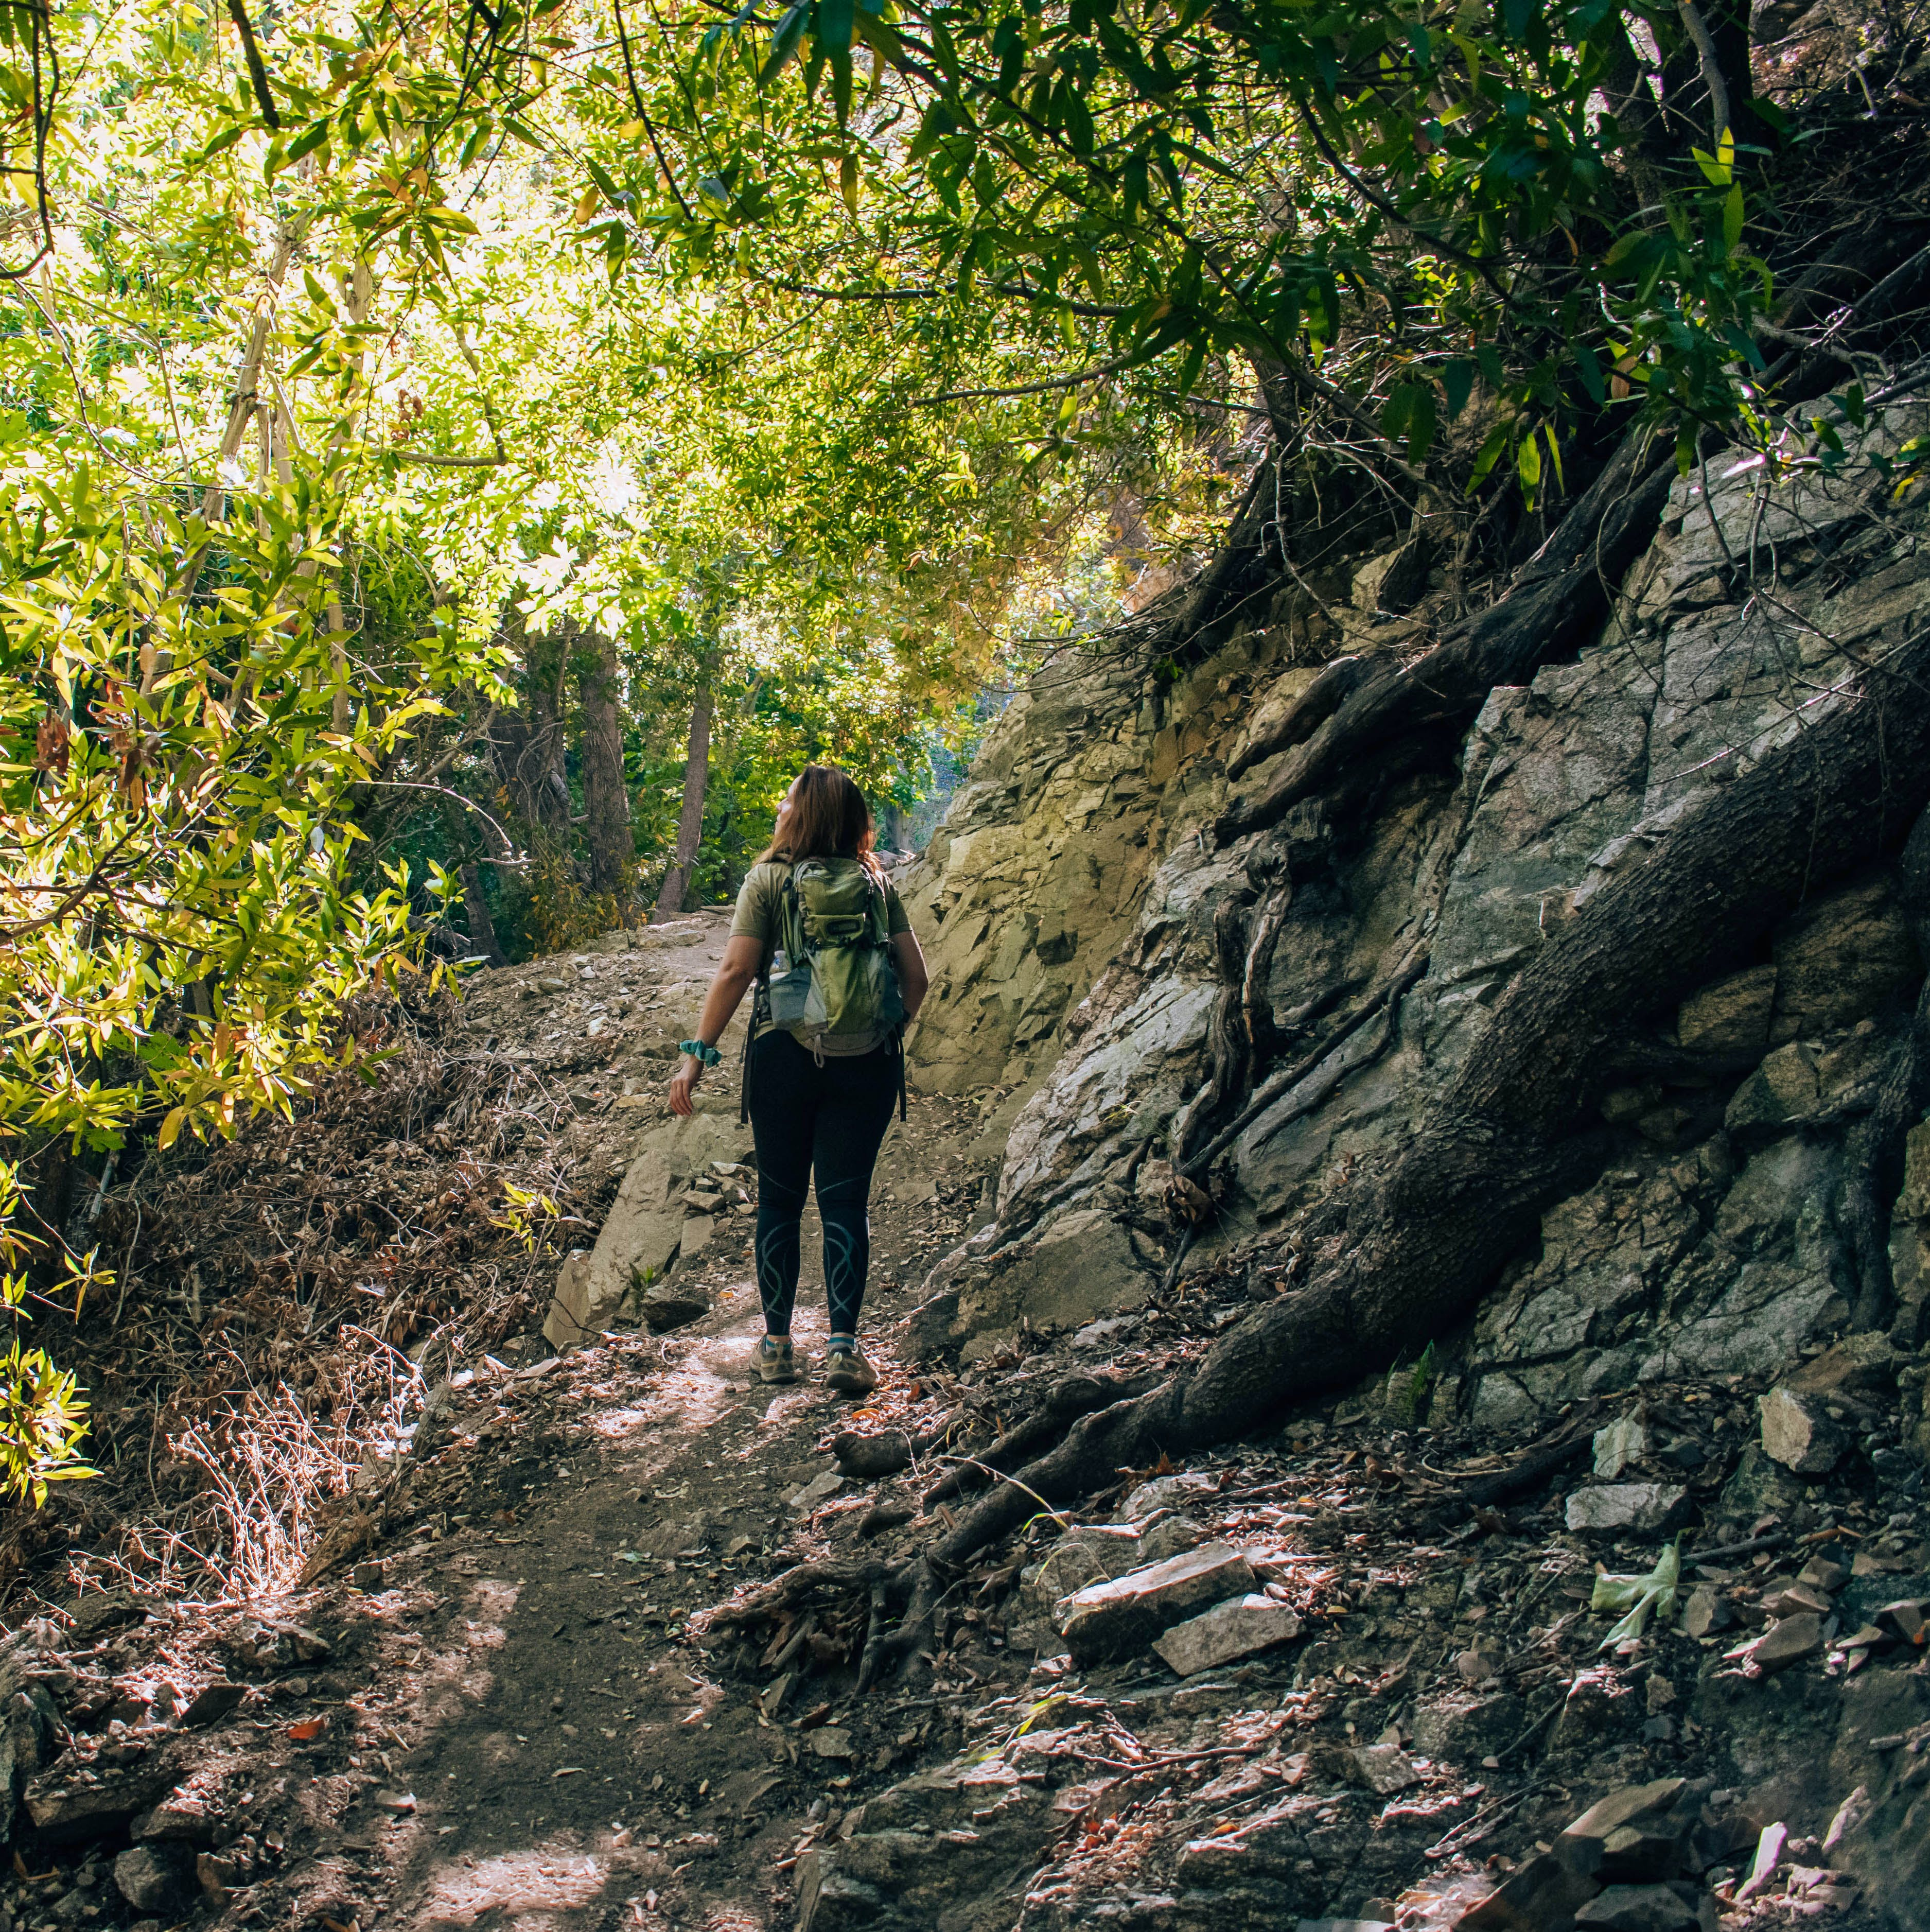 Woman walking through a forested section of the Bear Canyon Trail in Angeles National Forest Los Angeles County